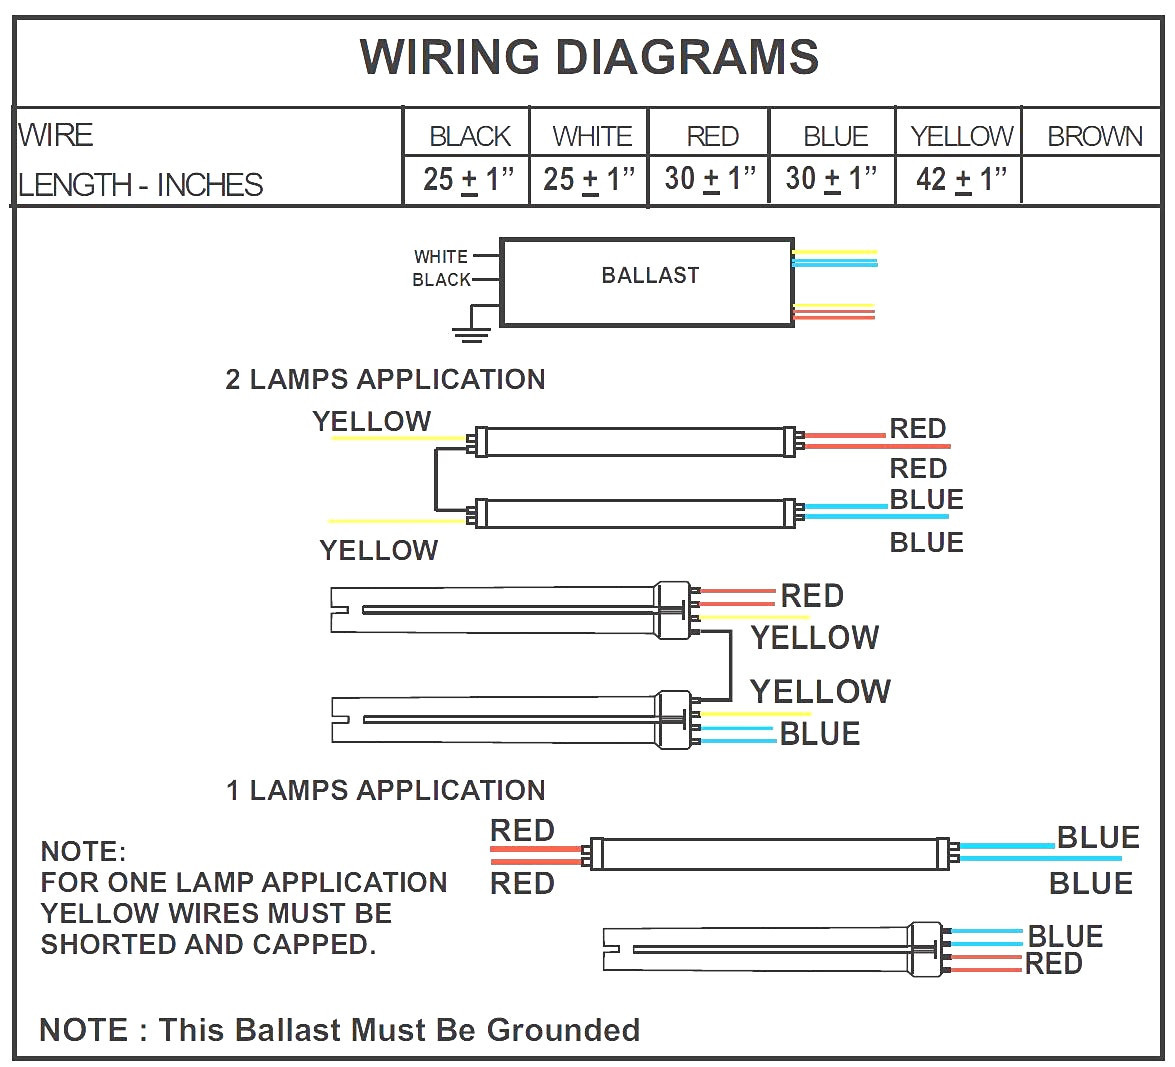 fulham workhorse wh5 120 l wiring diagram Collection-fulham workhorse wiring diagram with basic pictures 2 diagrams rh chromatex me T5 Diagram Wiring Fulhamwh1 120 L Bodine Emergency Ballast Wiring Diagram 18-t